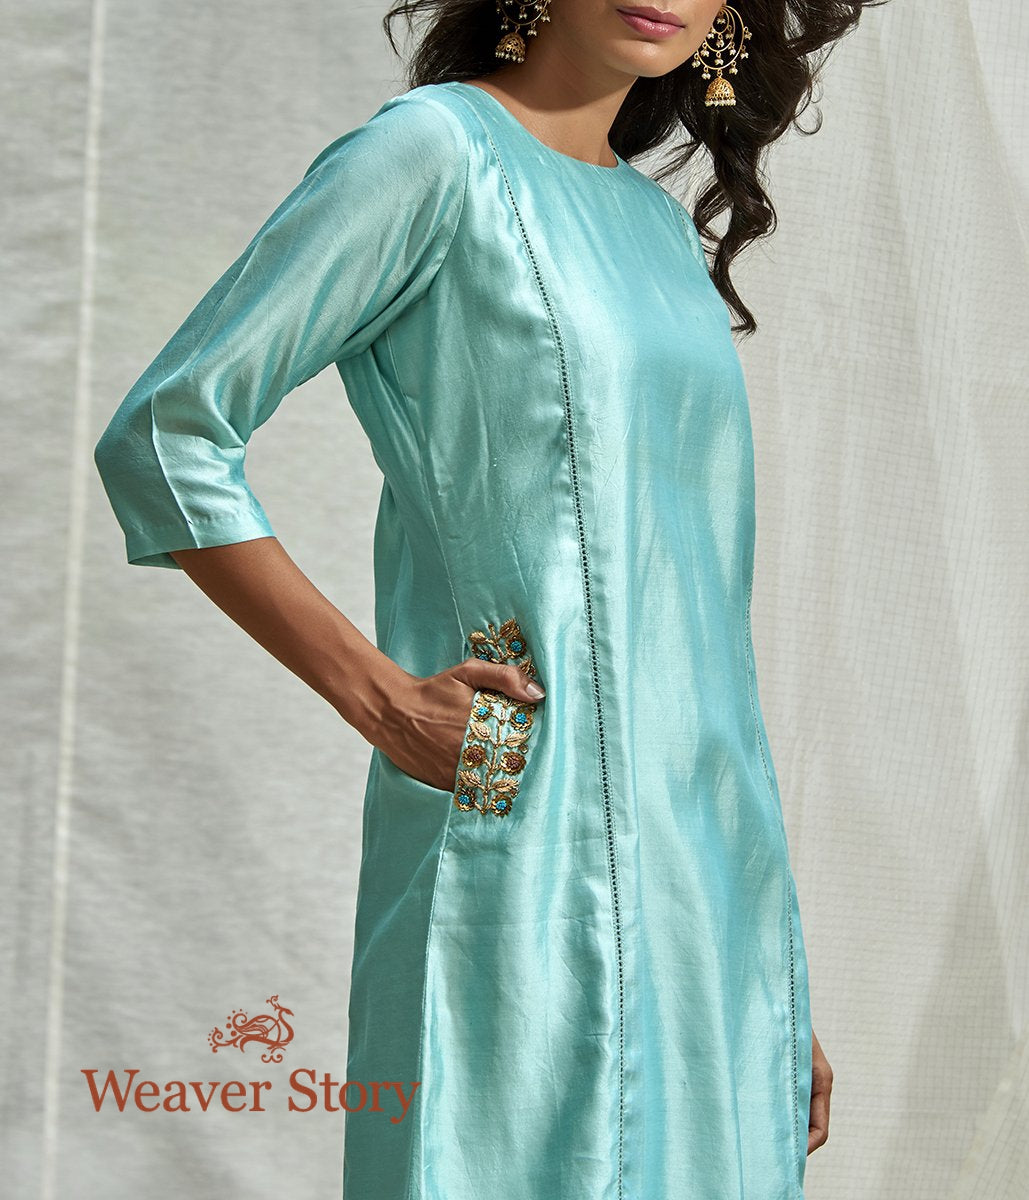 Handwoven Aqua Blue Tunic and Pants Set with Pocket Embroidery